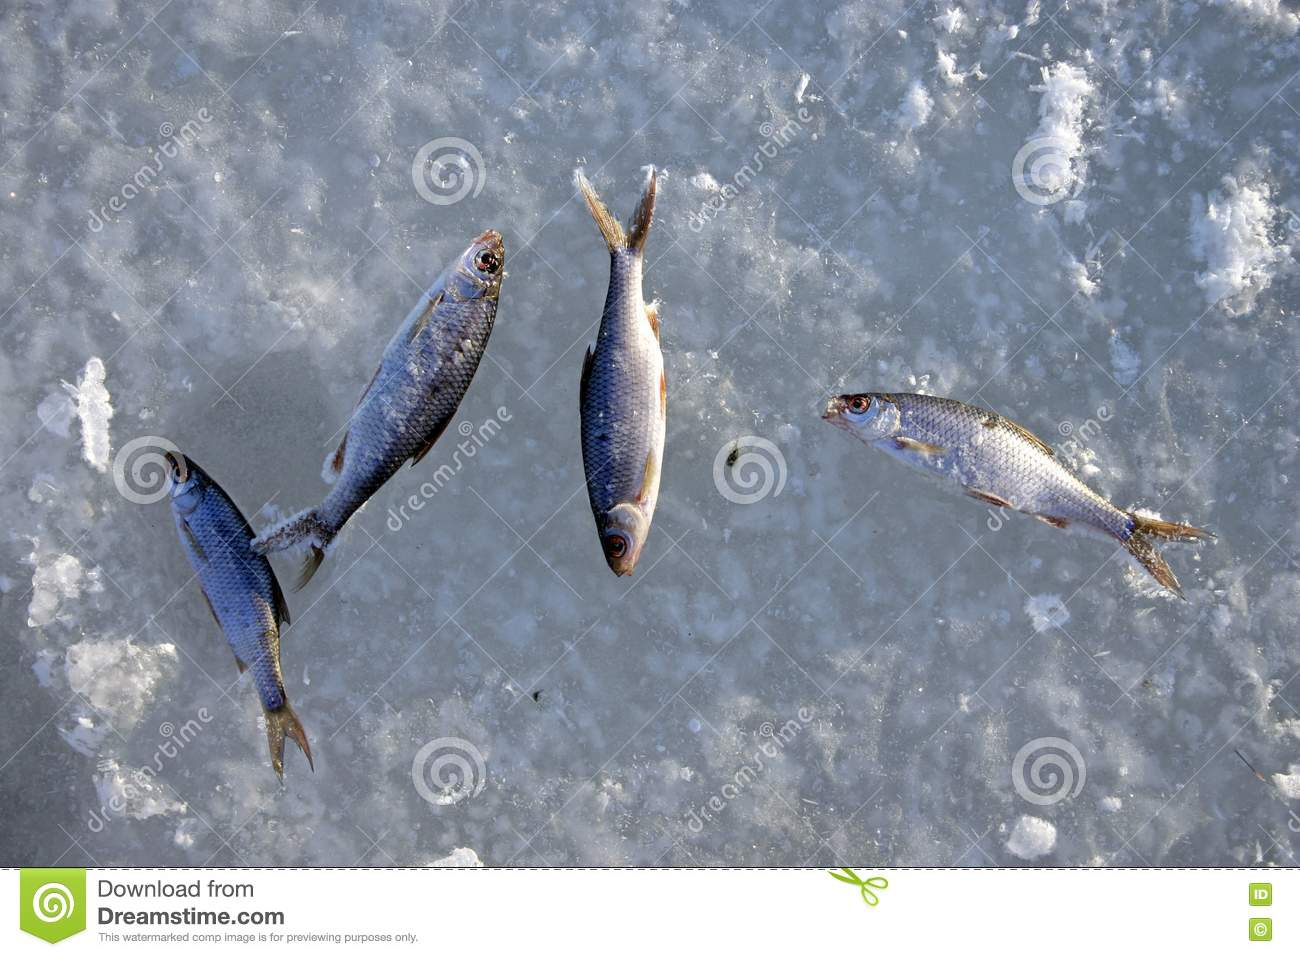 Frozen fish royalty free stock photo image 441155 for Best frozen fish to buy at grocery store